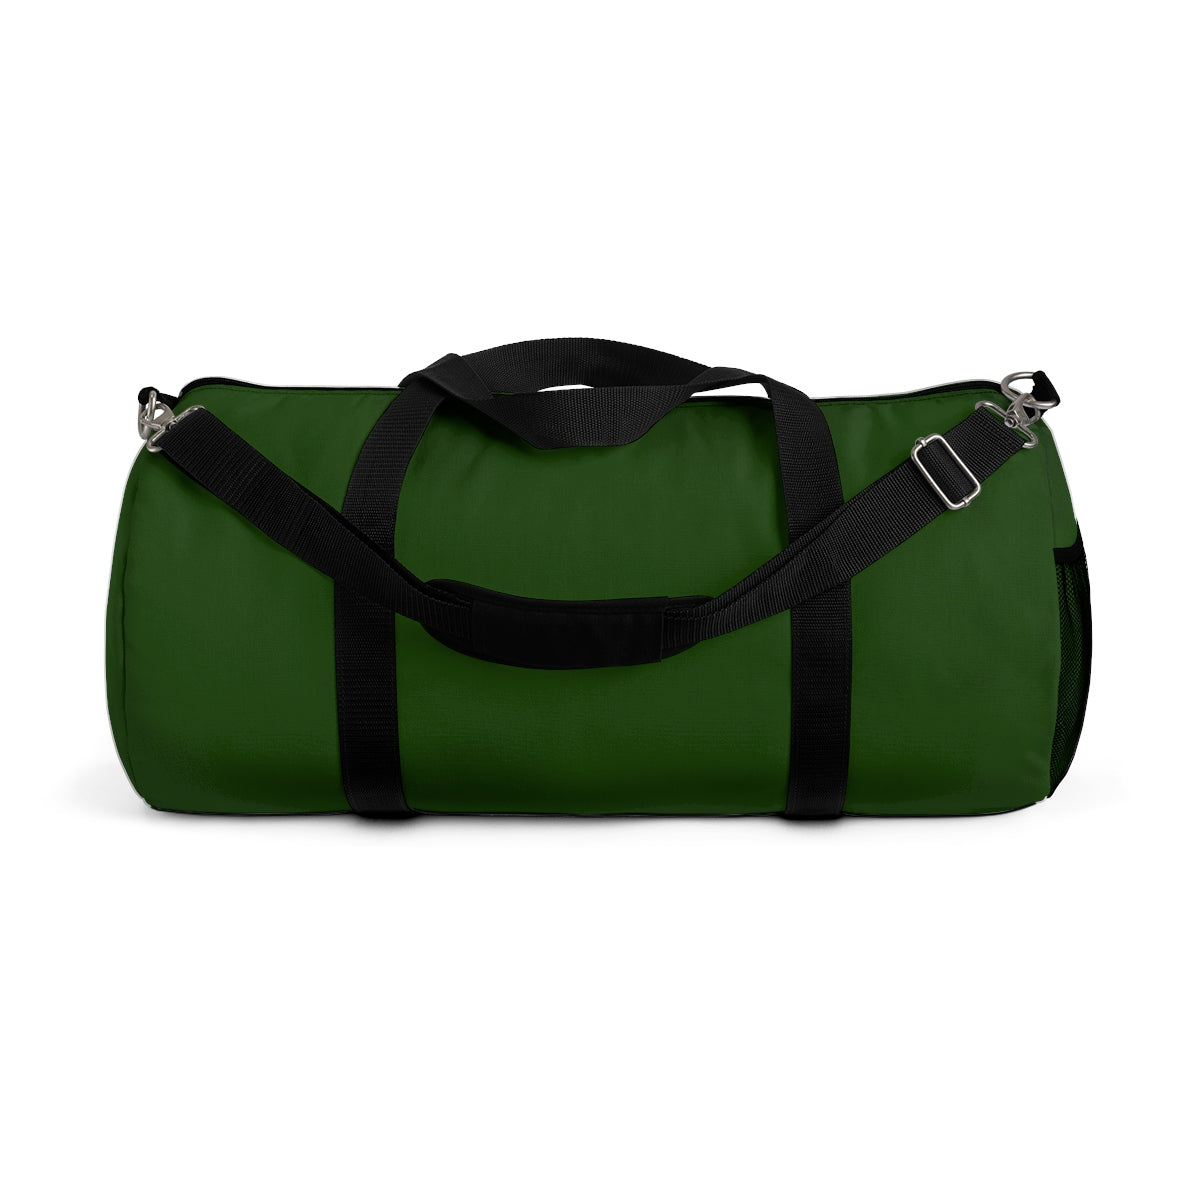 Emerald Green Solid Color All Day Small Or Large Size Duffel Bag, Made in USA-Duffel Bag-Small-Heidi Kimura Art LLC